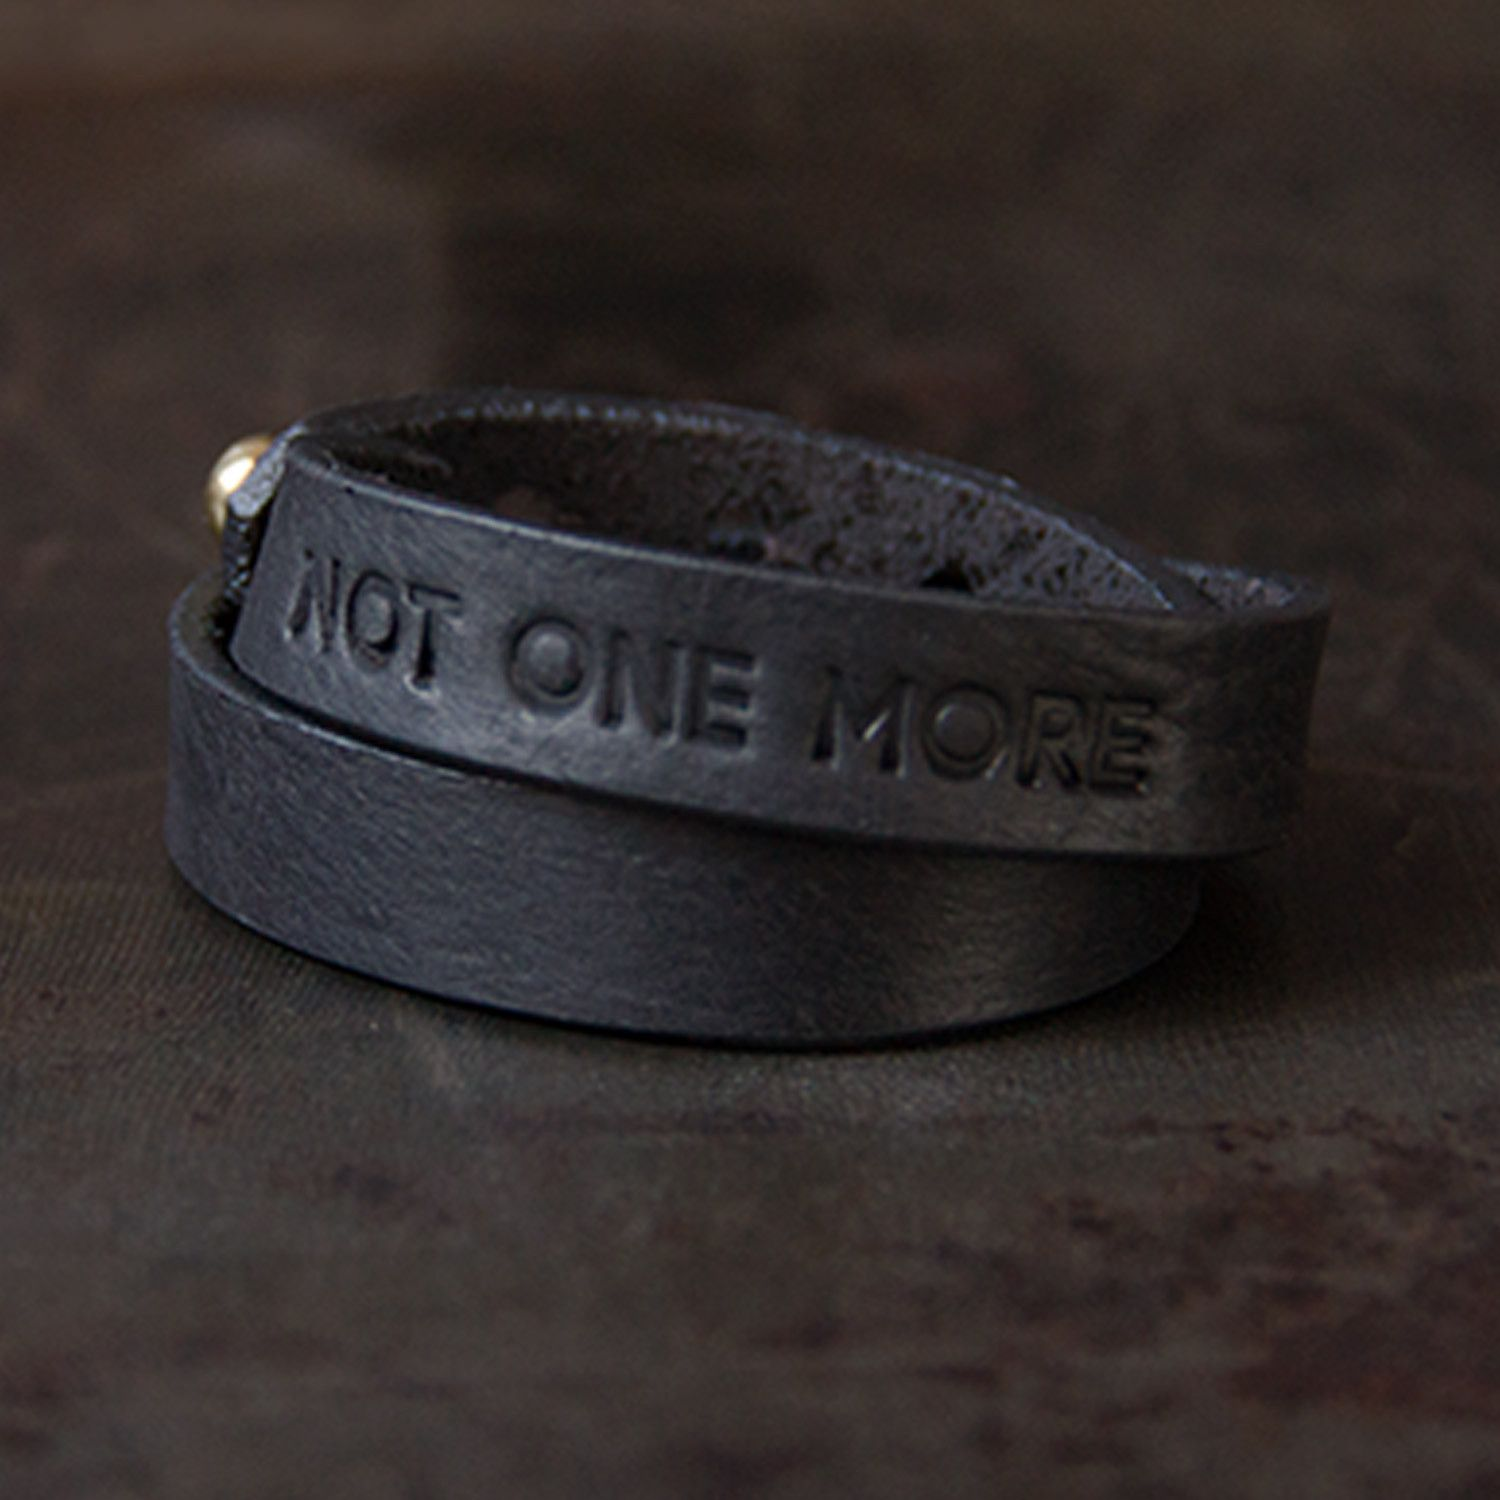 534e71a52155 Not One More Bracelet – Urban Zen